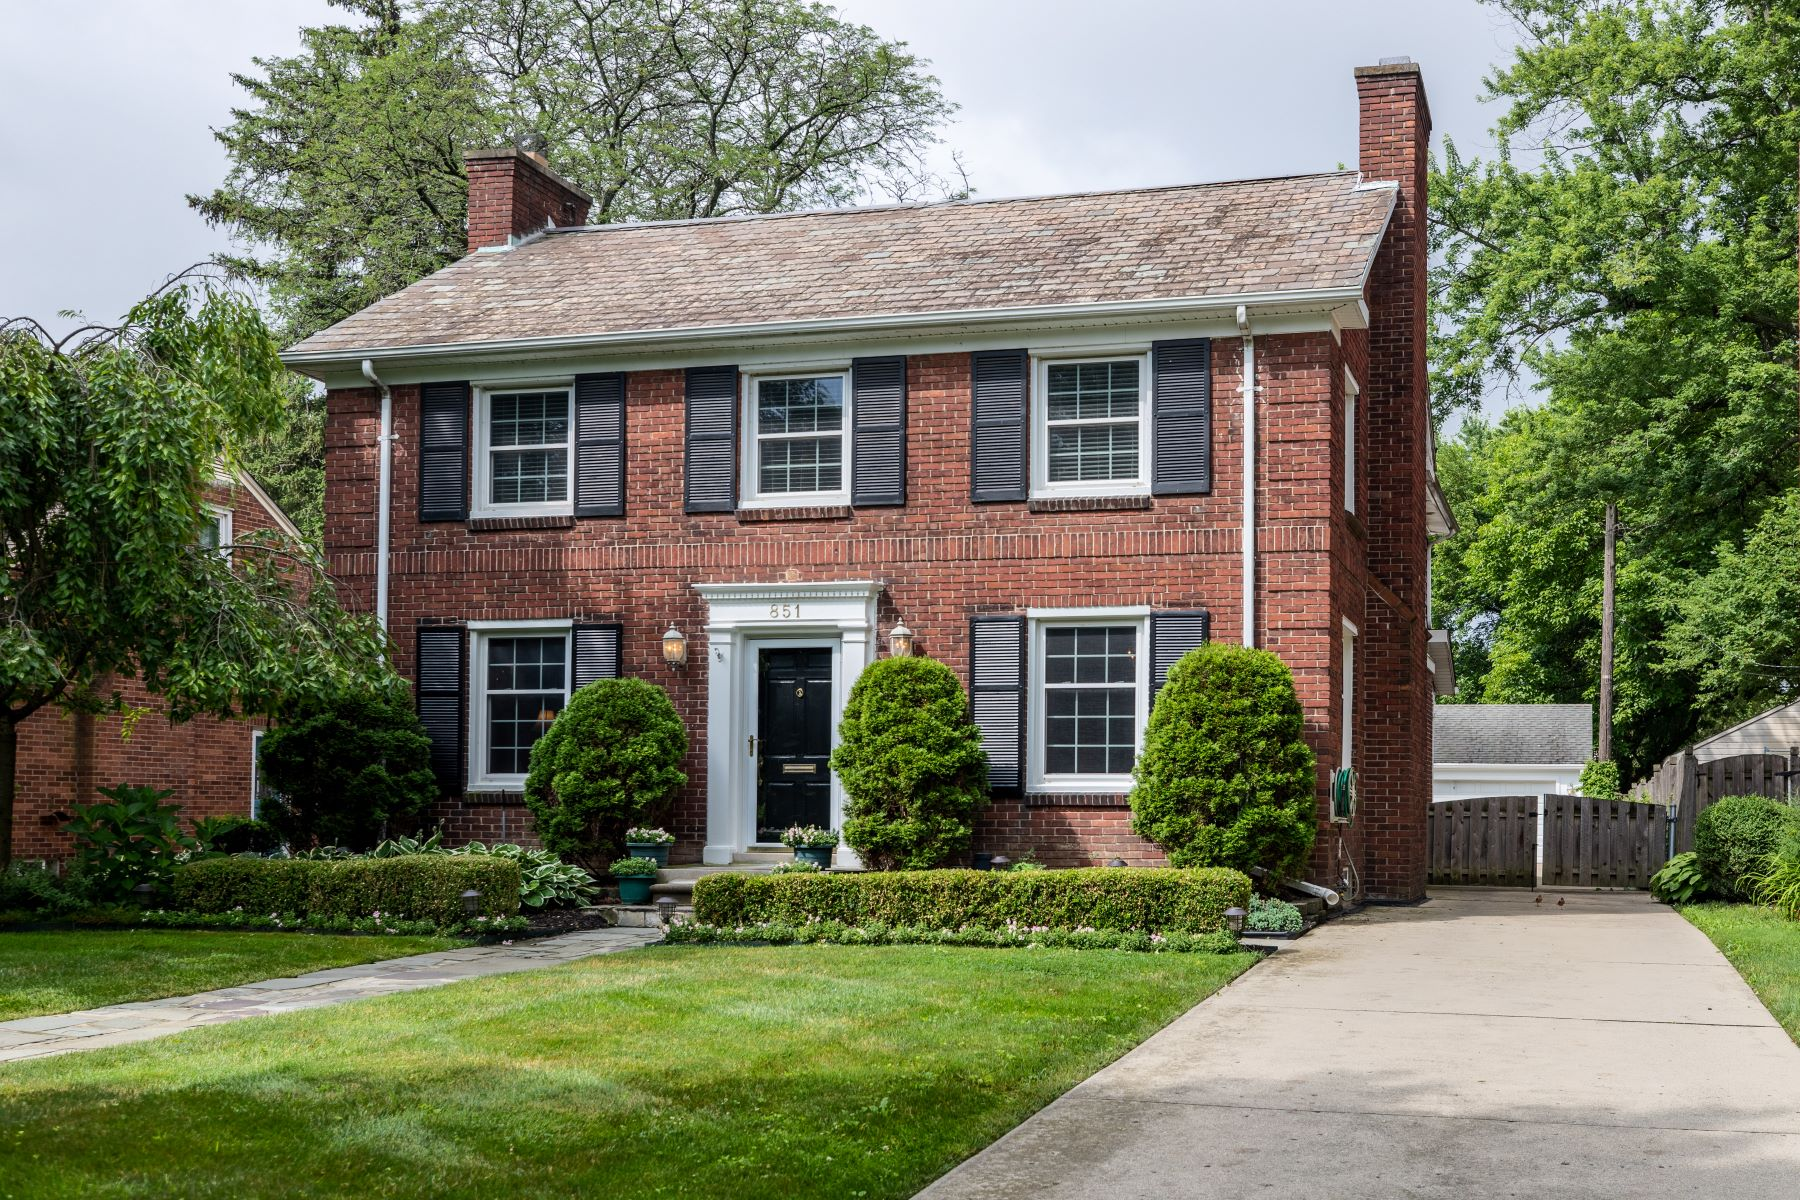 Single Family Homes for Active at Grosse Pointe 851 Washington Grosse Pointe, Michigan 48230 United States